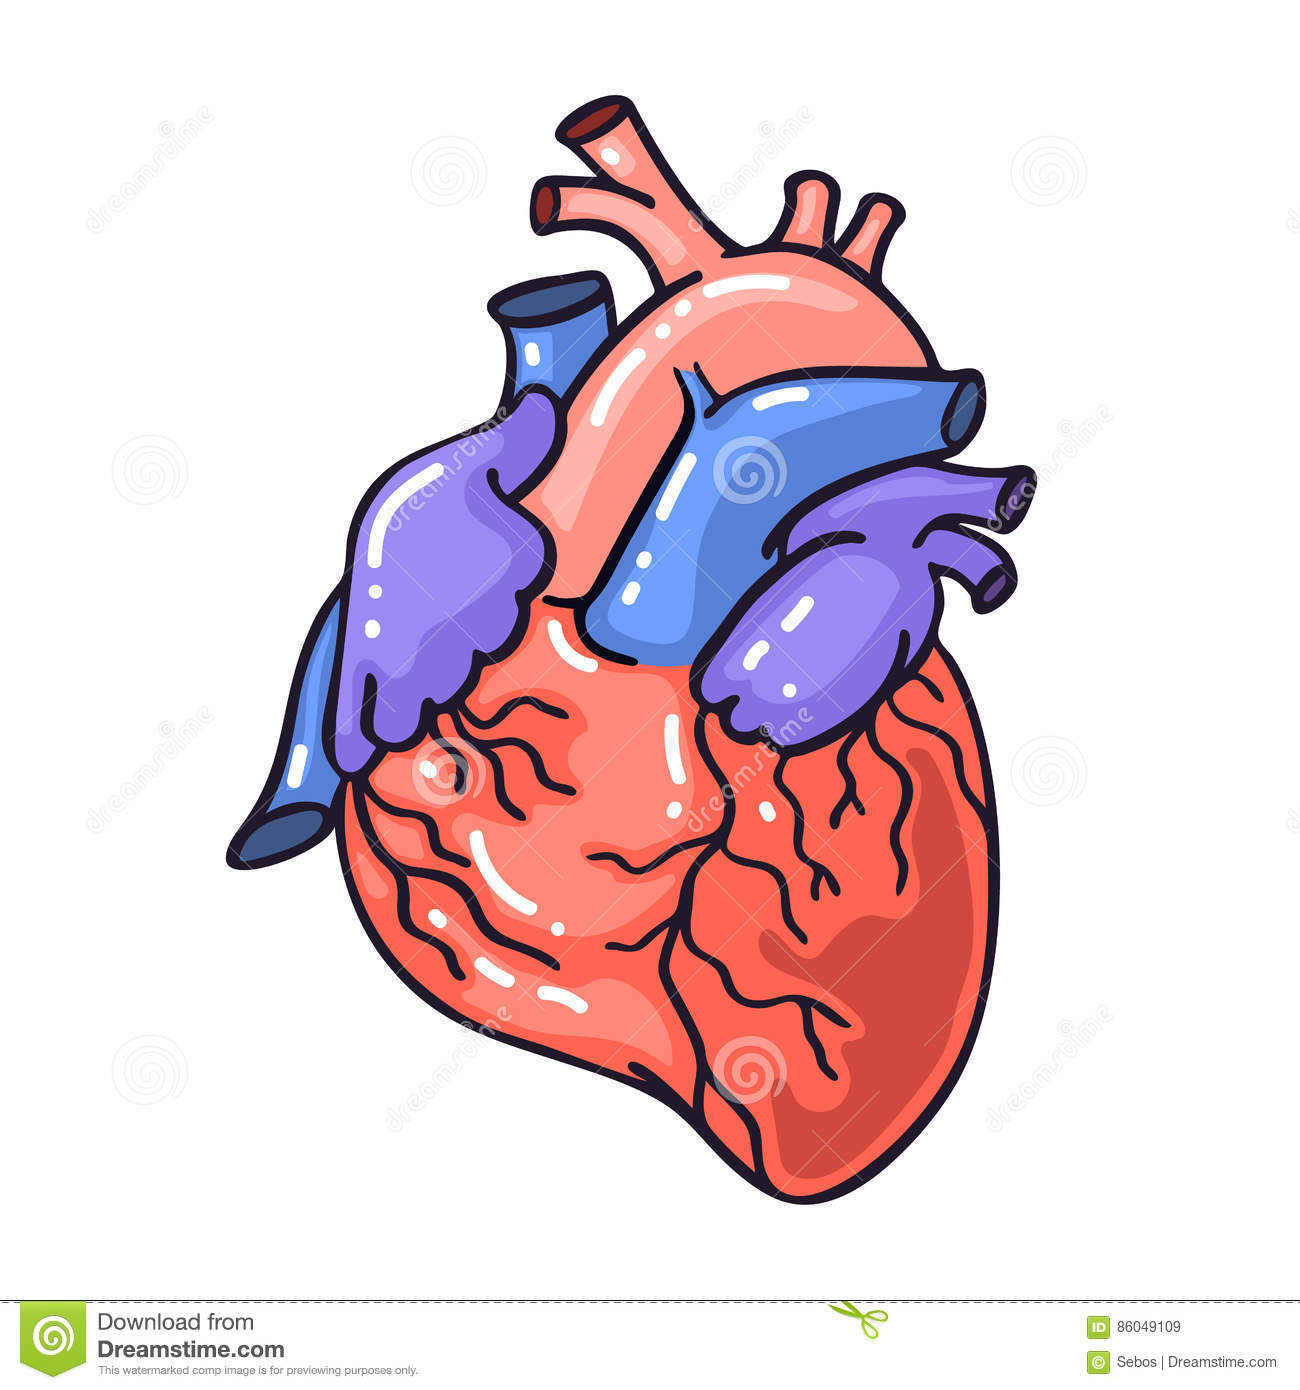 Hand Drawing Sketch Anatomical Heartrtoon Style Vector